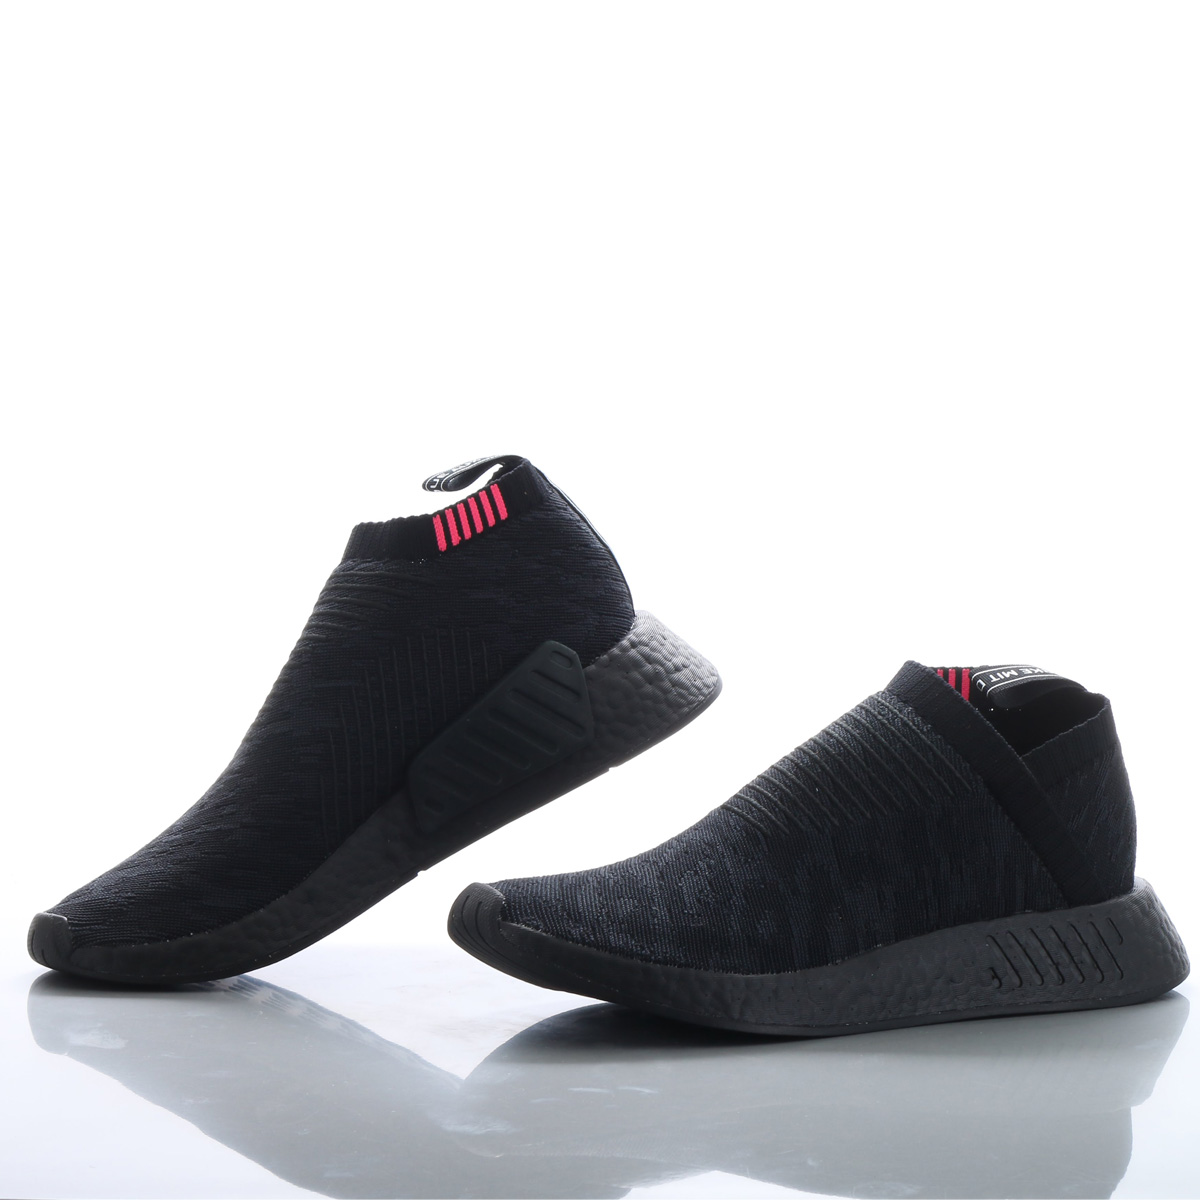 competitive price c5be0 c6305 adidas Originals NMD_CS2 PK (Adidas originals N M D CS2 PK) Core  Black/Carbon/Shock Pink 18SS-S